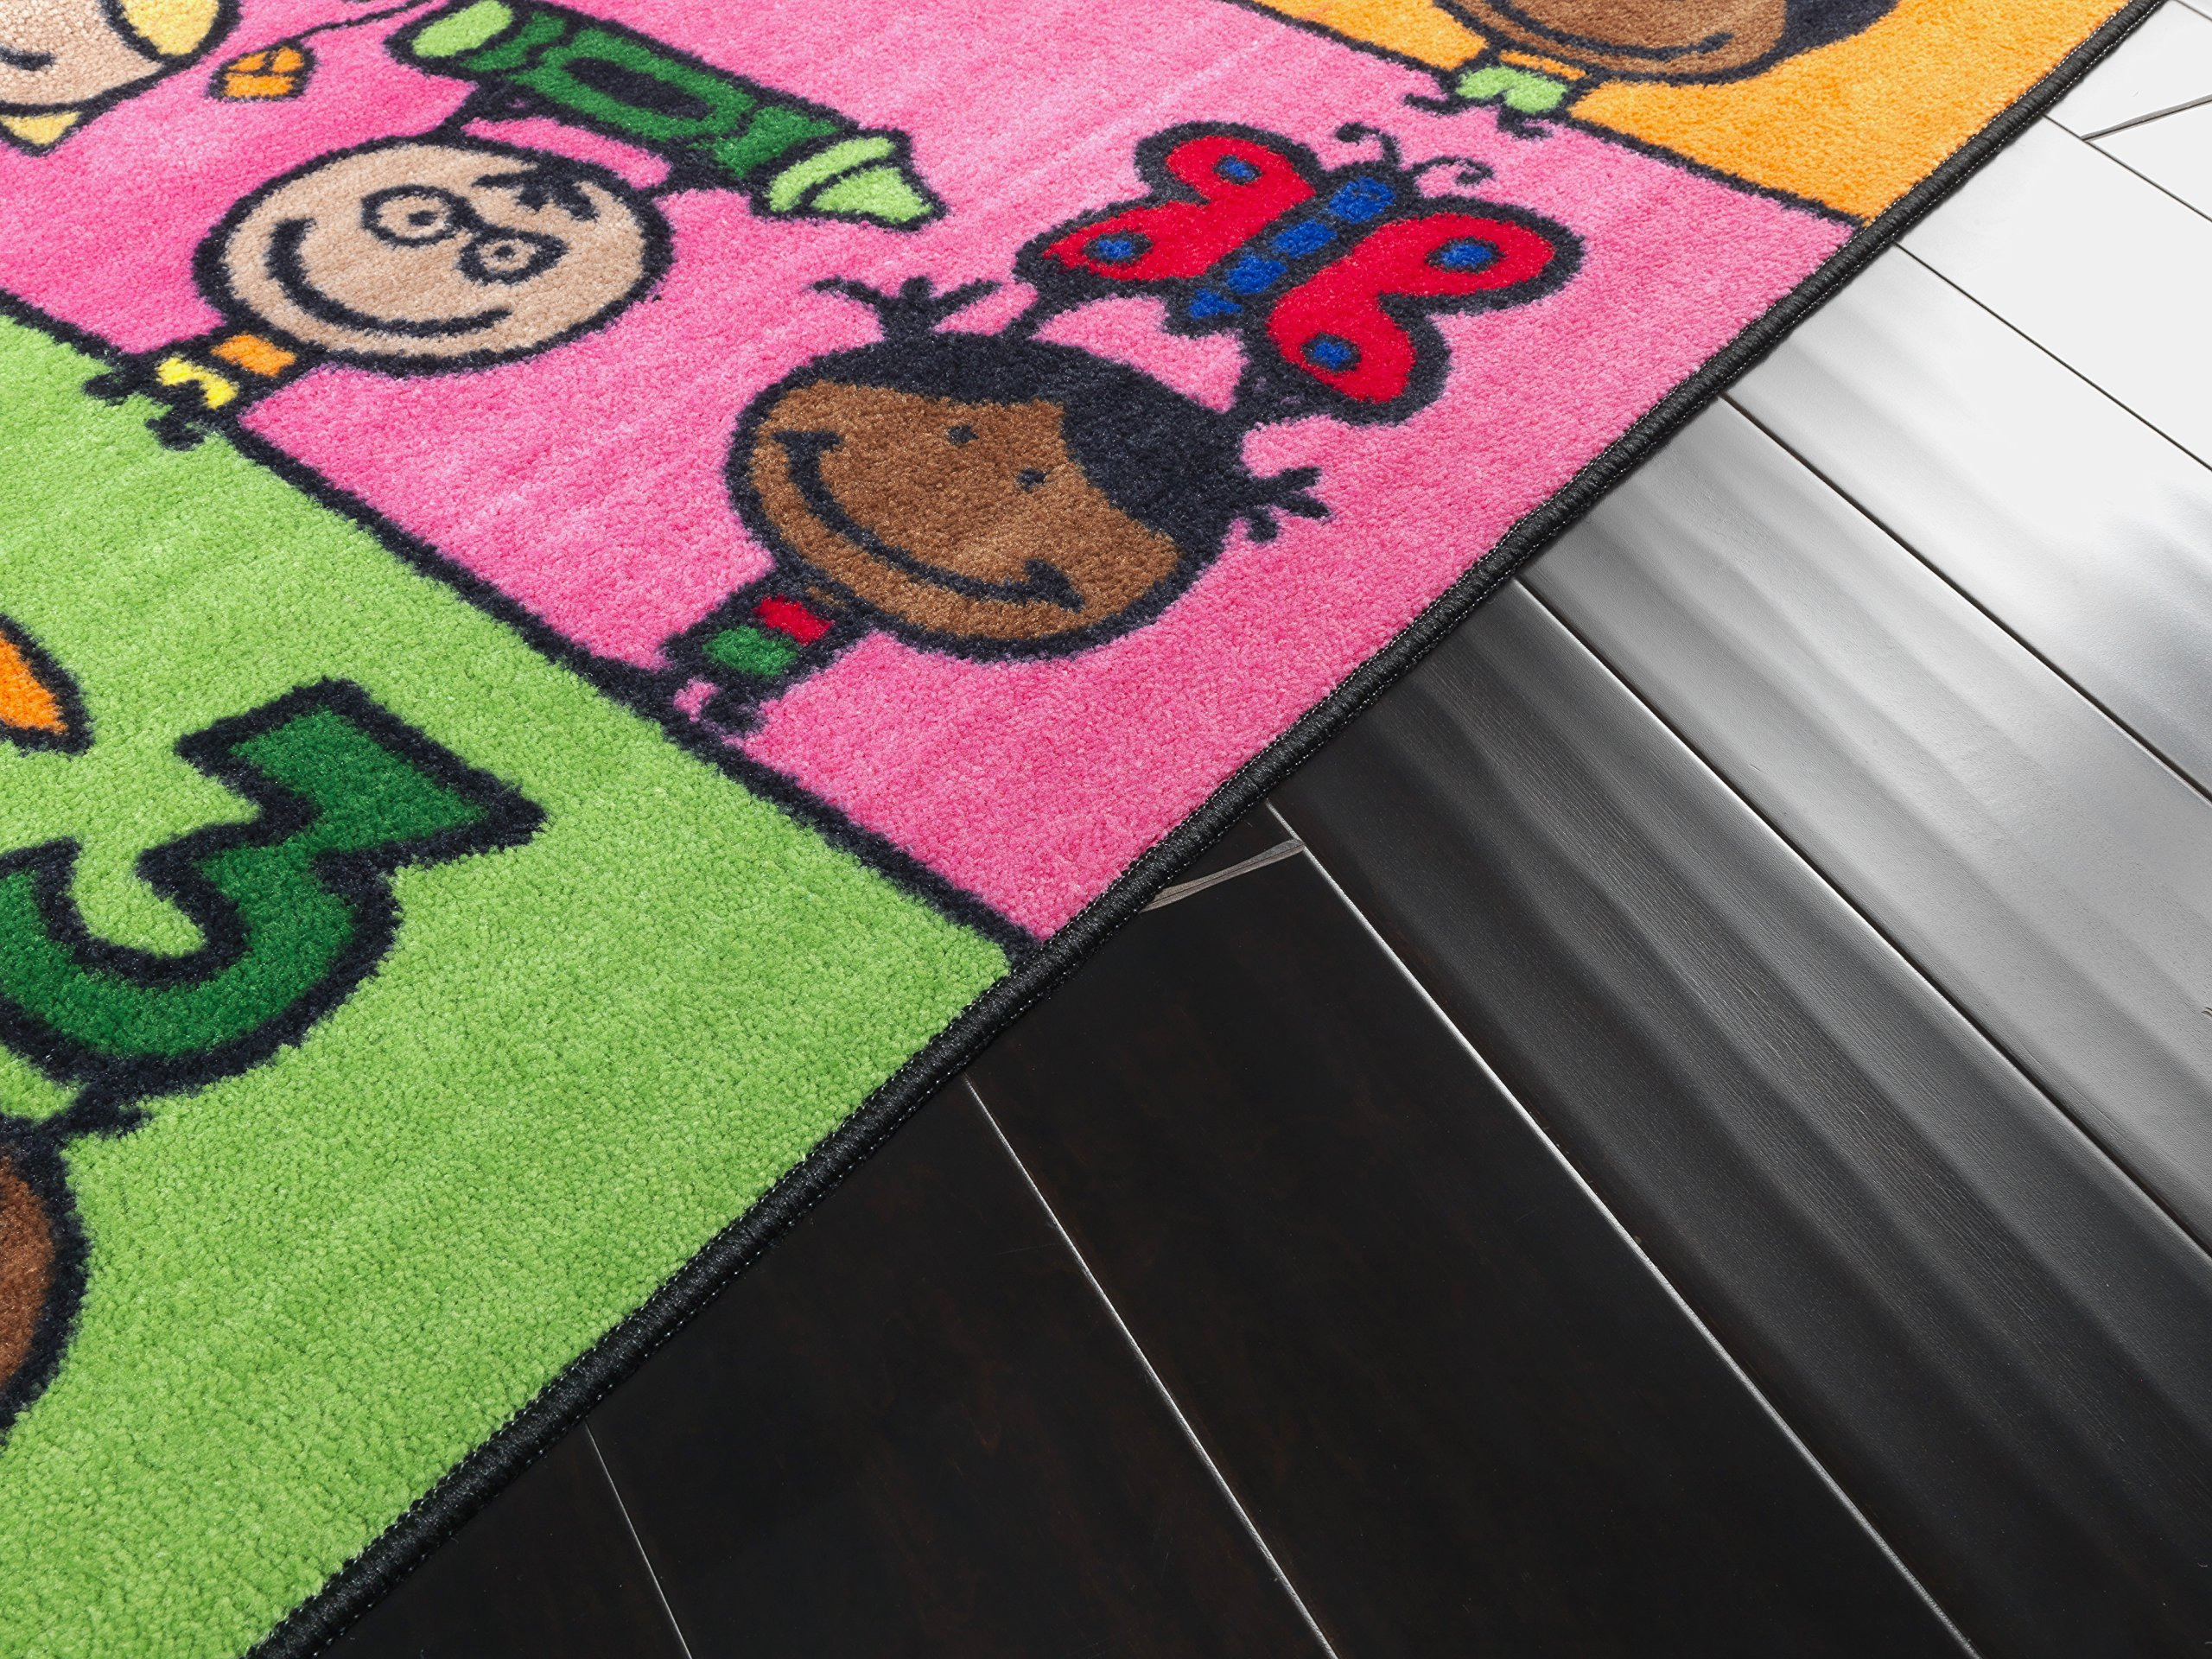 Flagship Carpets CE190-28W Fun at School Rug, Explore Health and Wellness As Well As STEAM Subjects, Children's Classroom Educational Carpet, 5' x 8', 60'' Length, 96'' Width, Multi-Color by Flagship Carpets (Image #15)